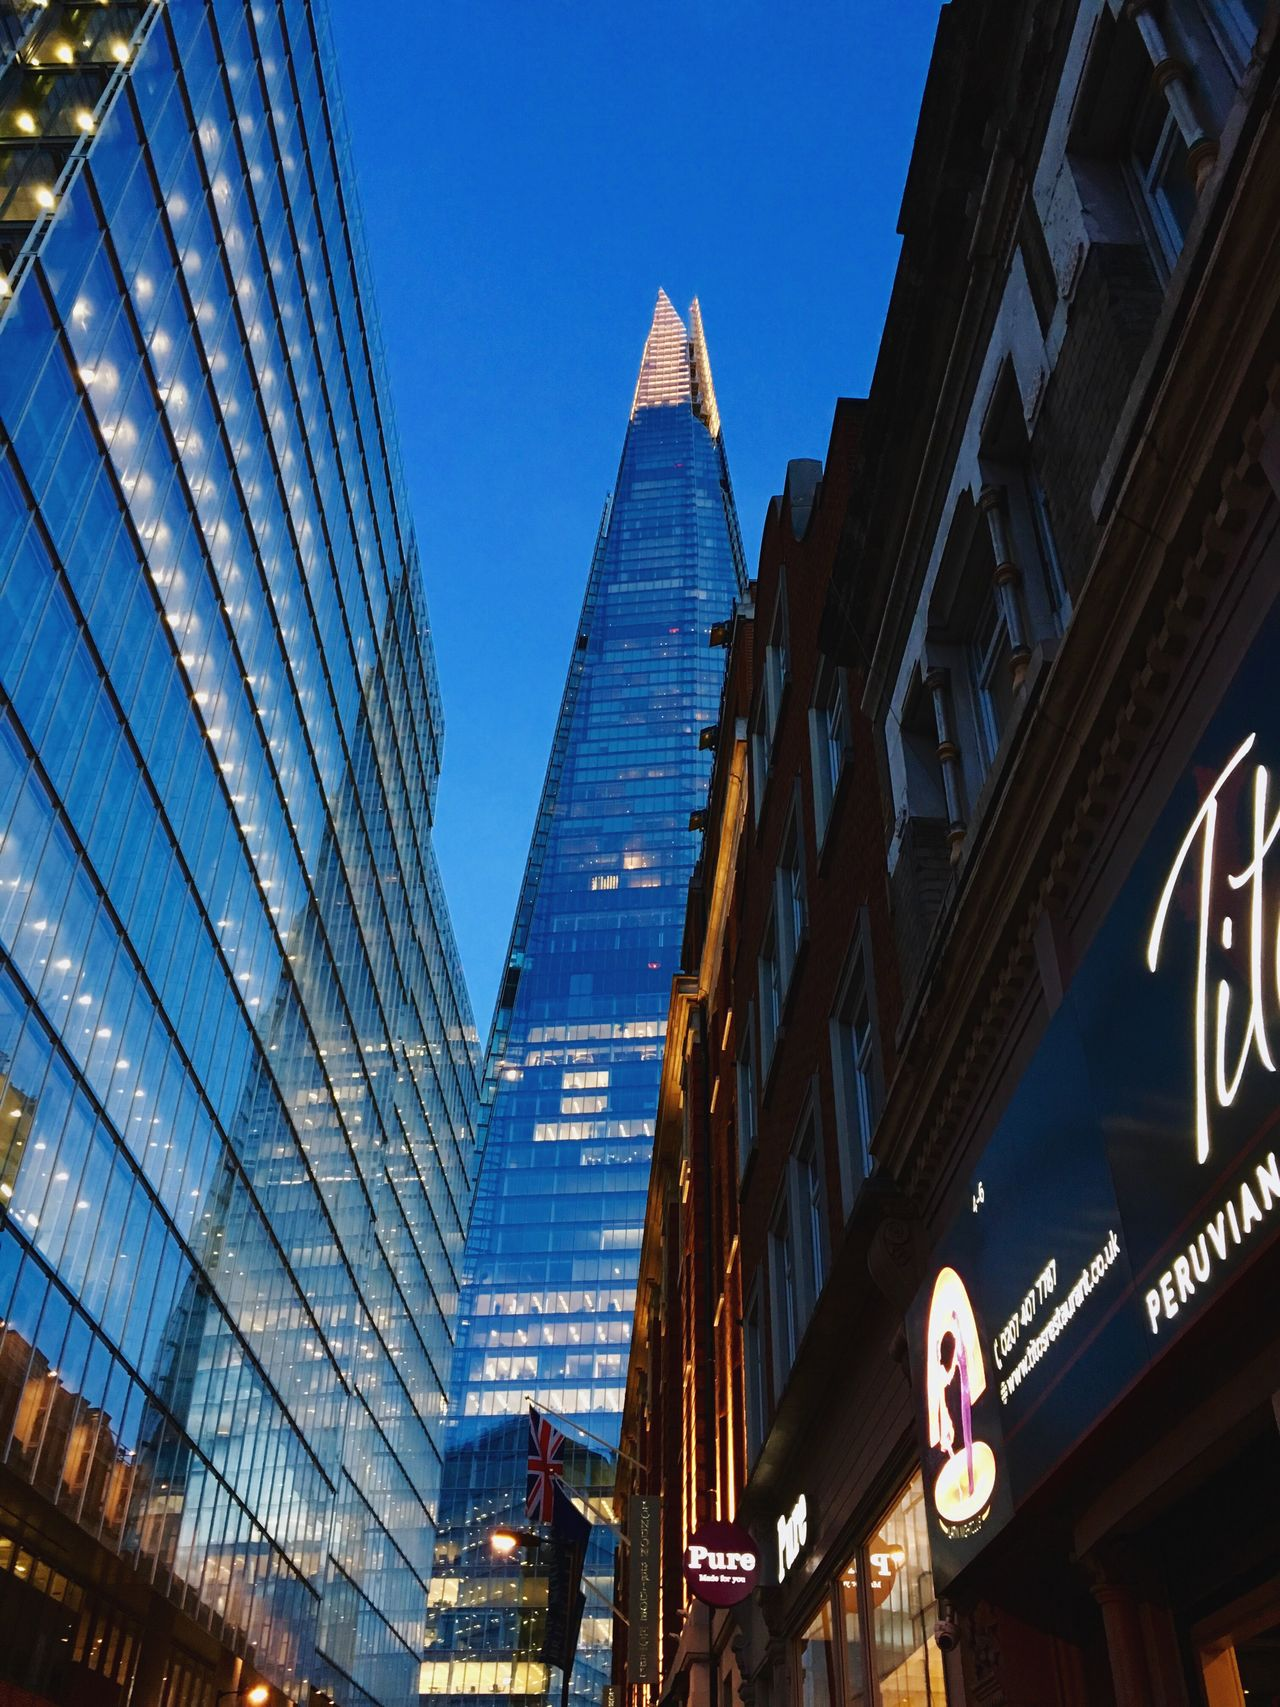 Travelphotography City Life Travel Photography London Lifestyle London Traveling City Built Structure Travel Architecture Building Exterior Skyscraper Modern Architecture Travel Destinations London_only Outdoors Low Angle View The Shard Shard